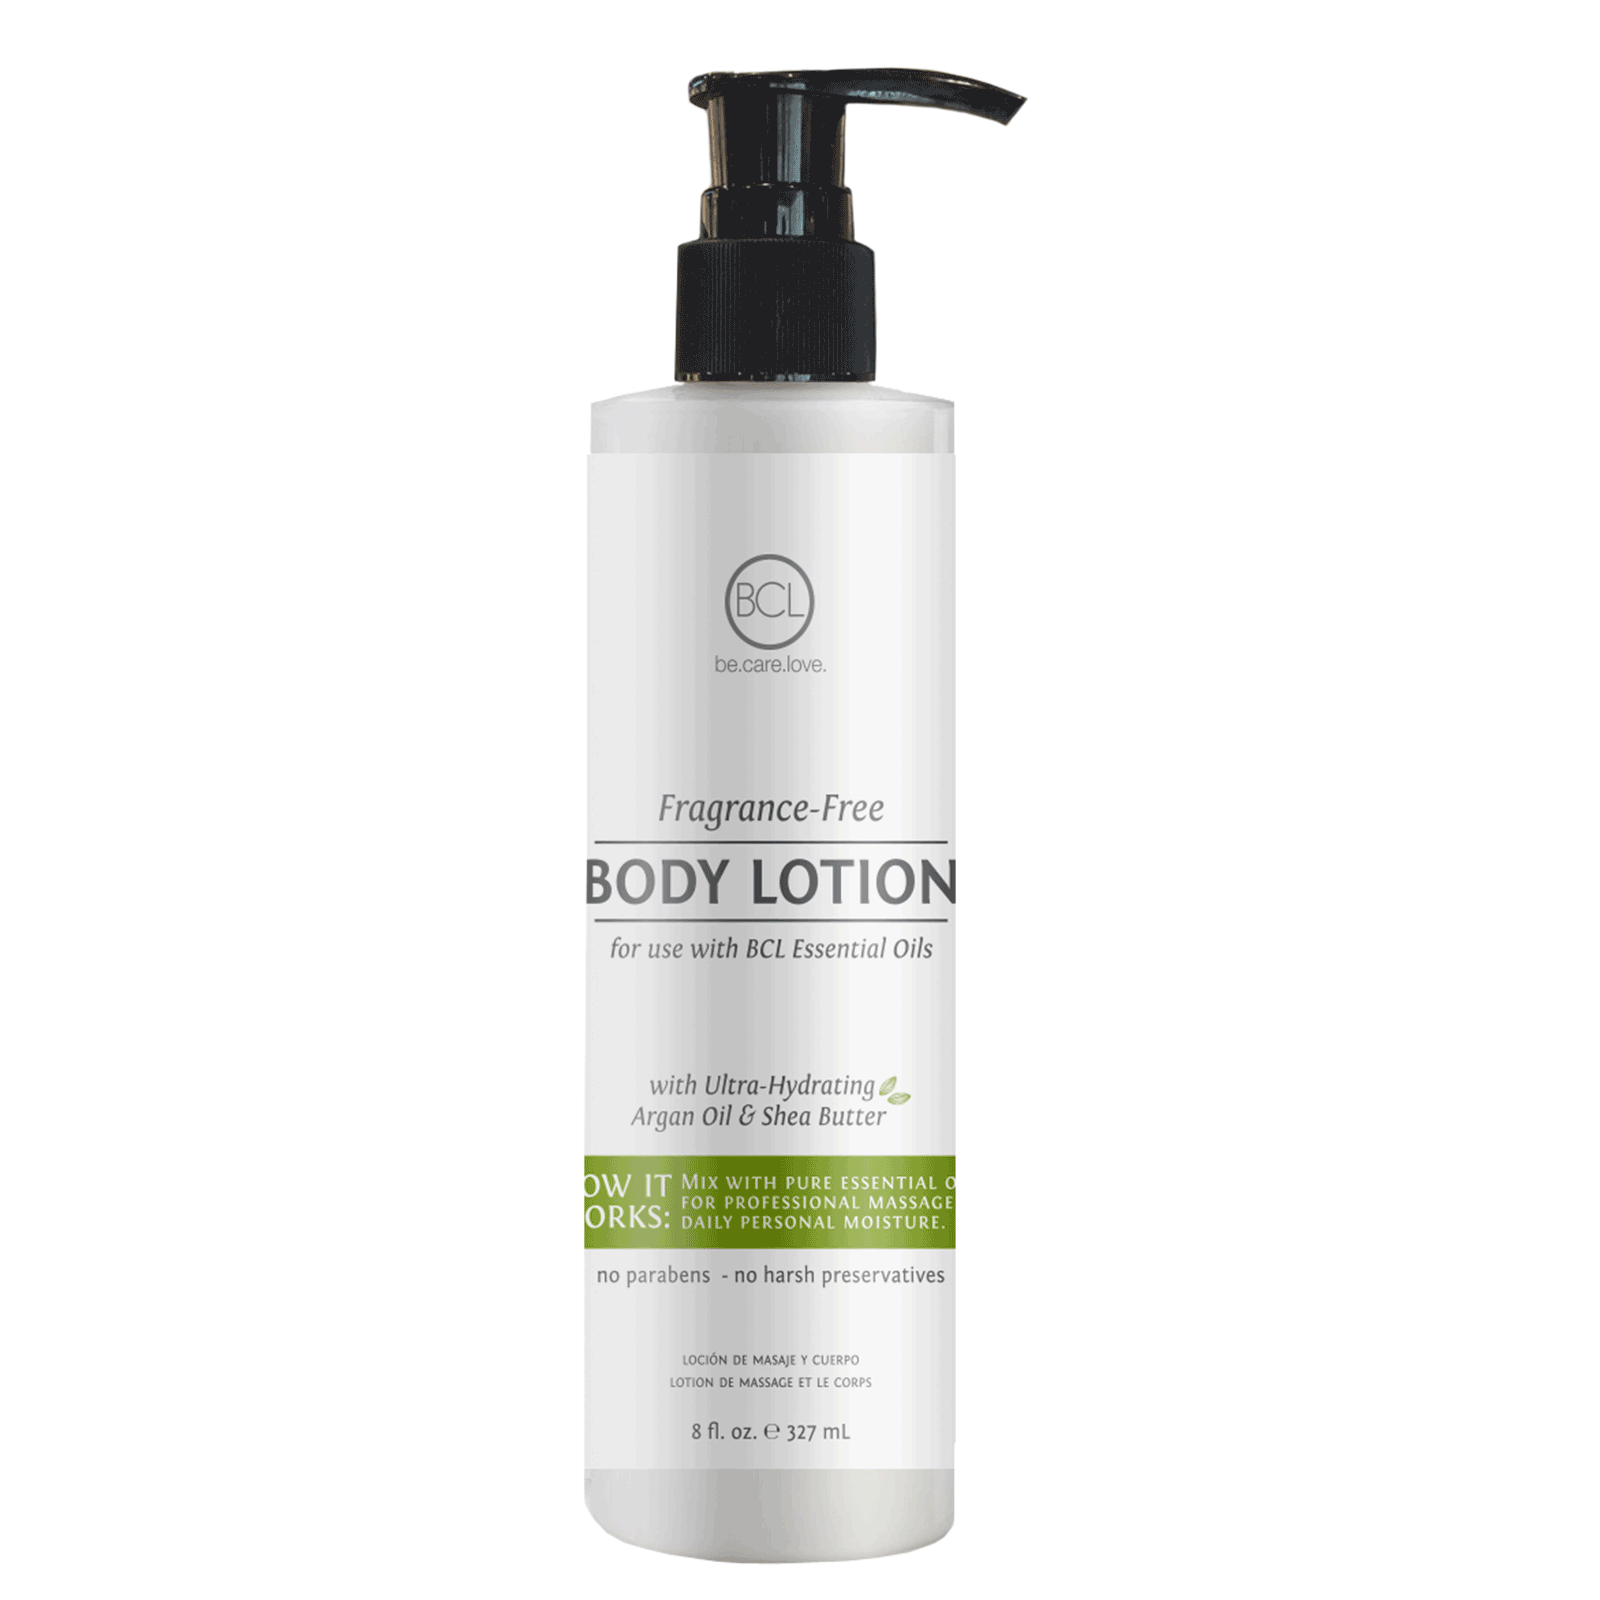 Fragrance-Free Body Lotion